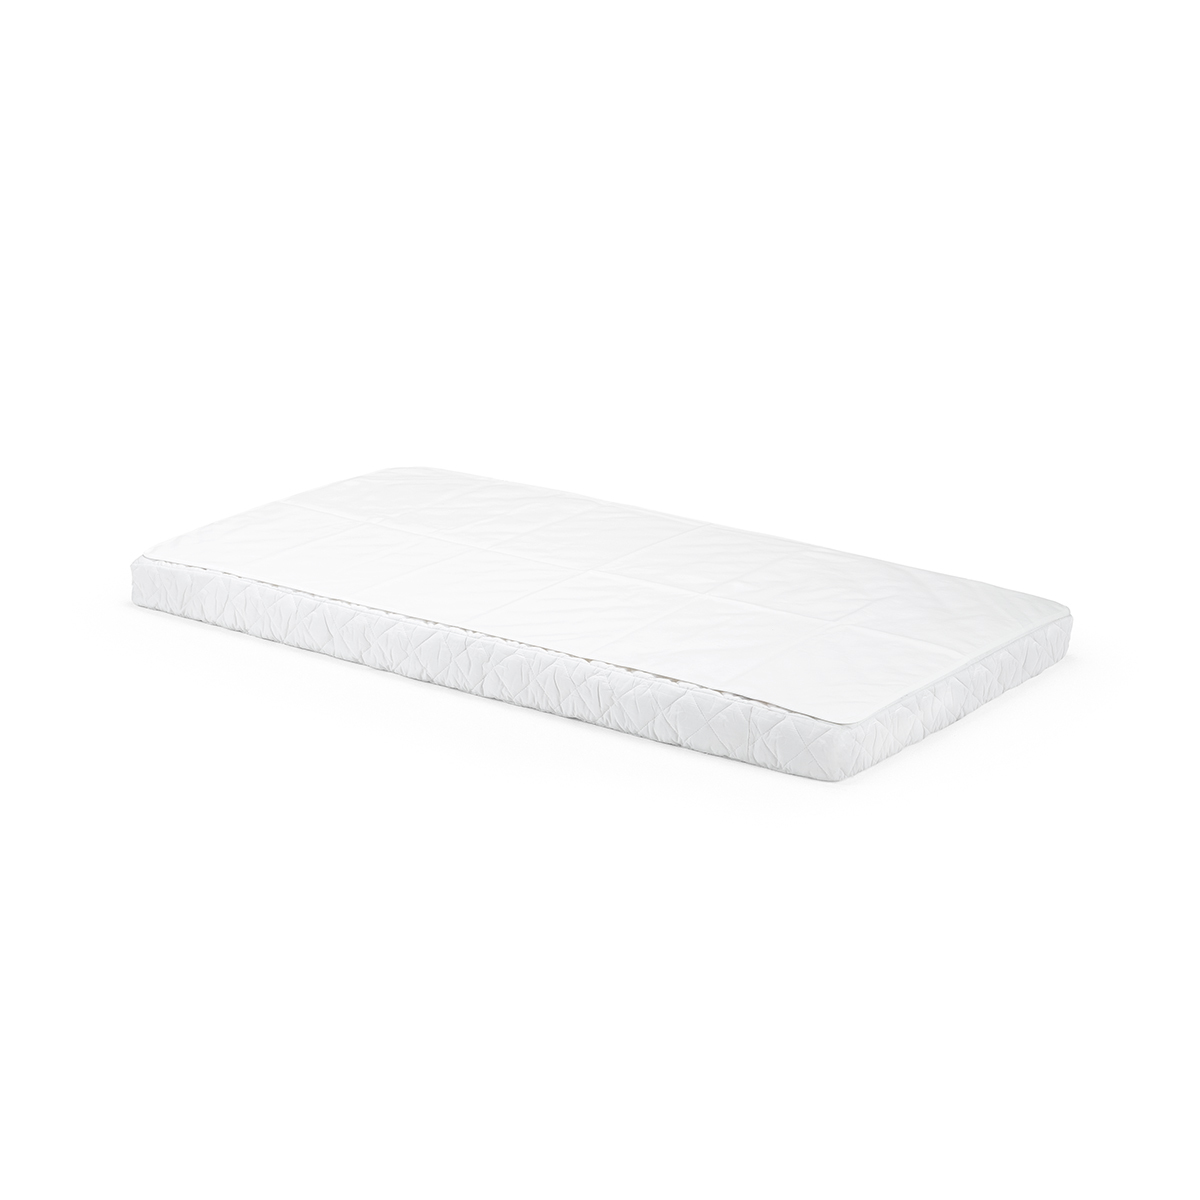 Bed Mattress, Protection Sheet